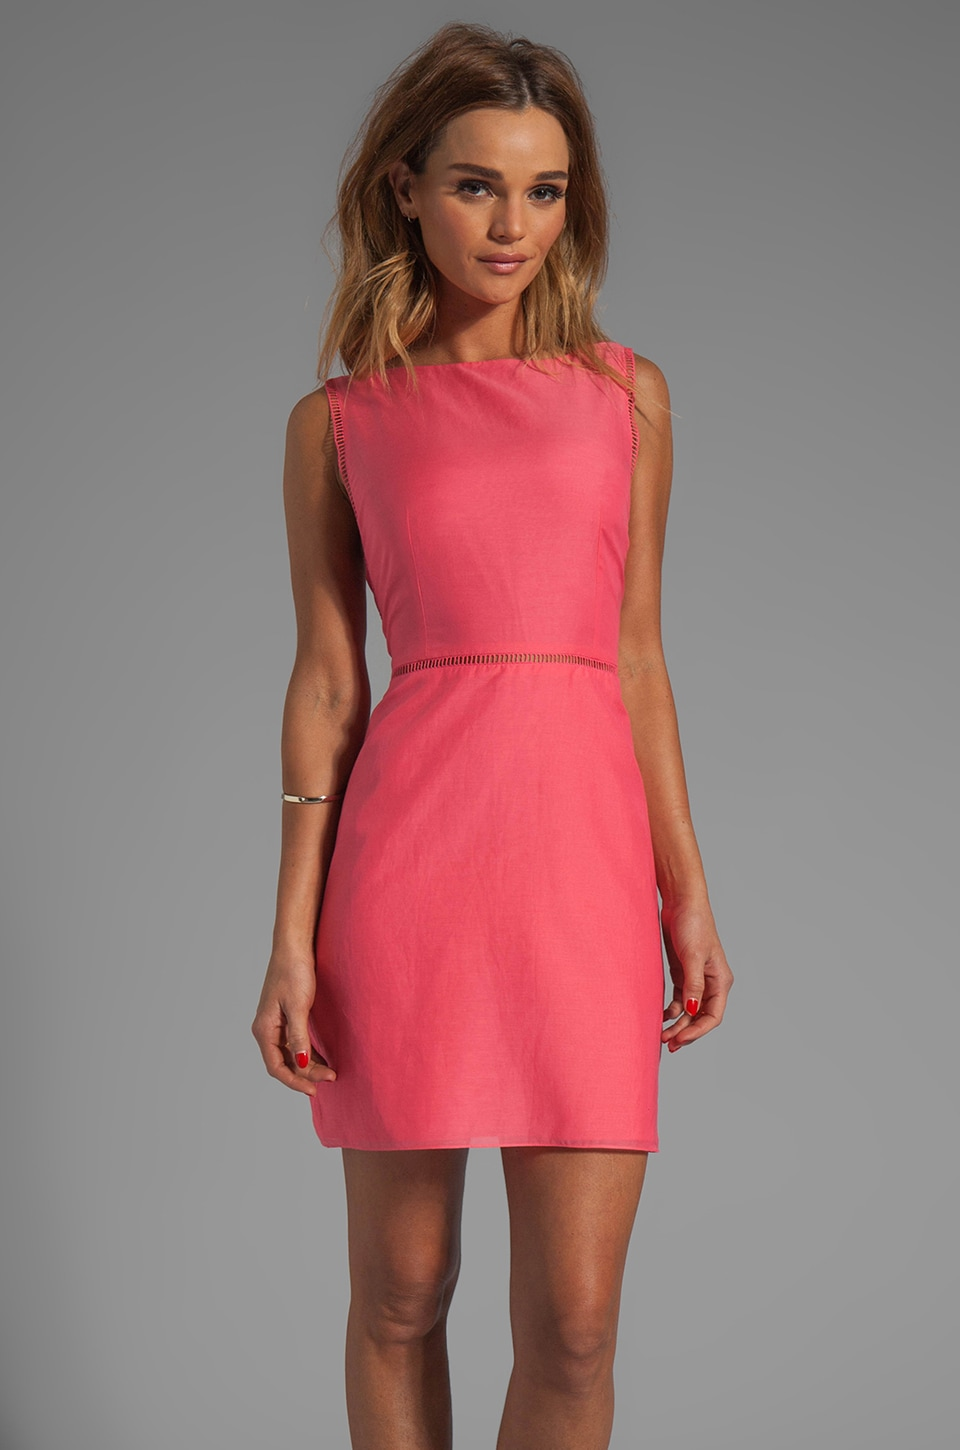 Tibi Silk Sleeveless Dress in Calypso Red